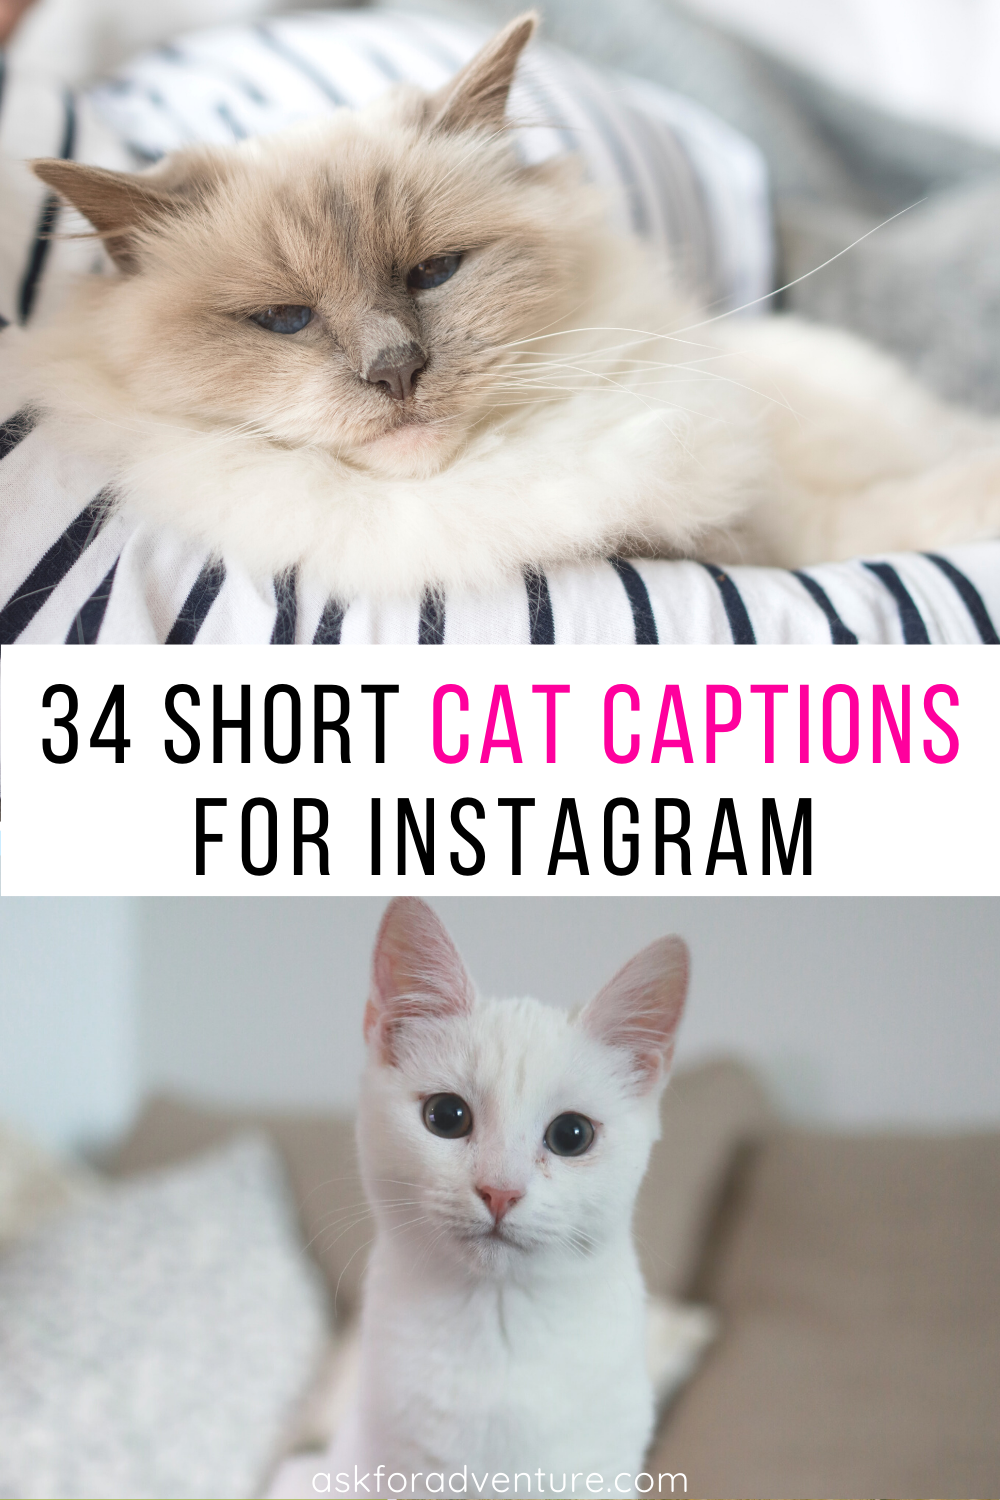 34 Short Cat Captions for Instagram Pictures of Cute